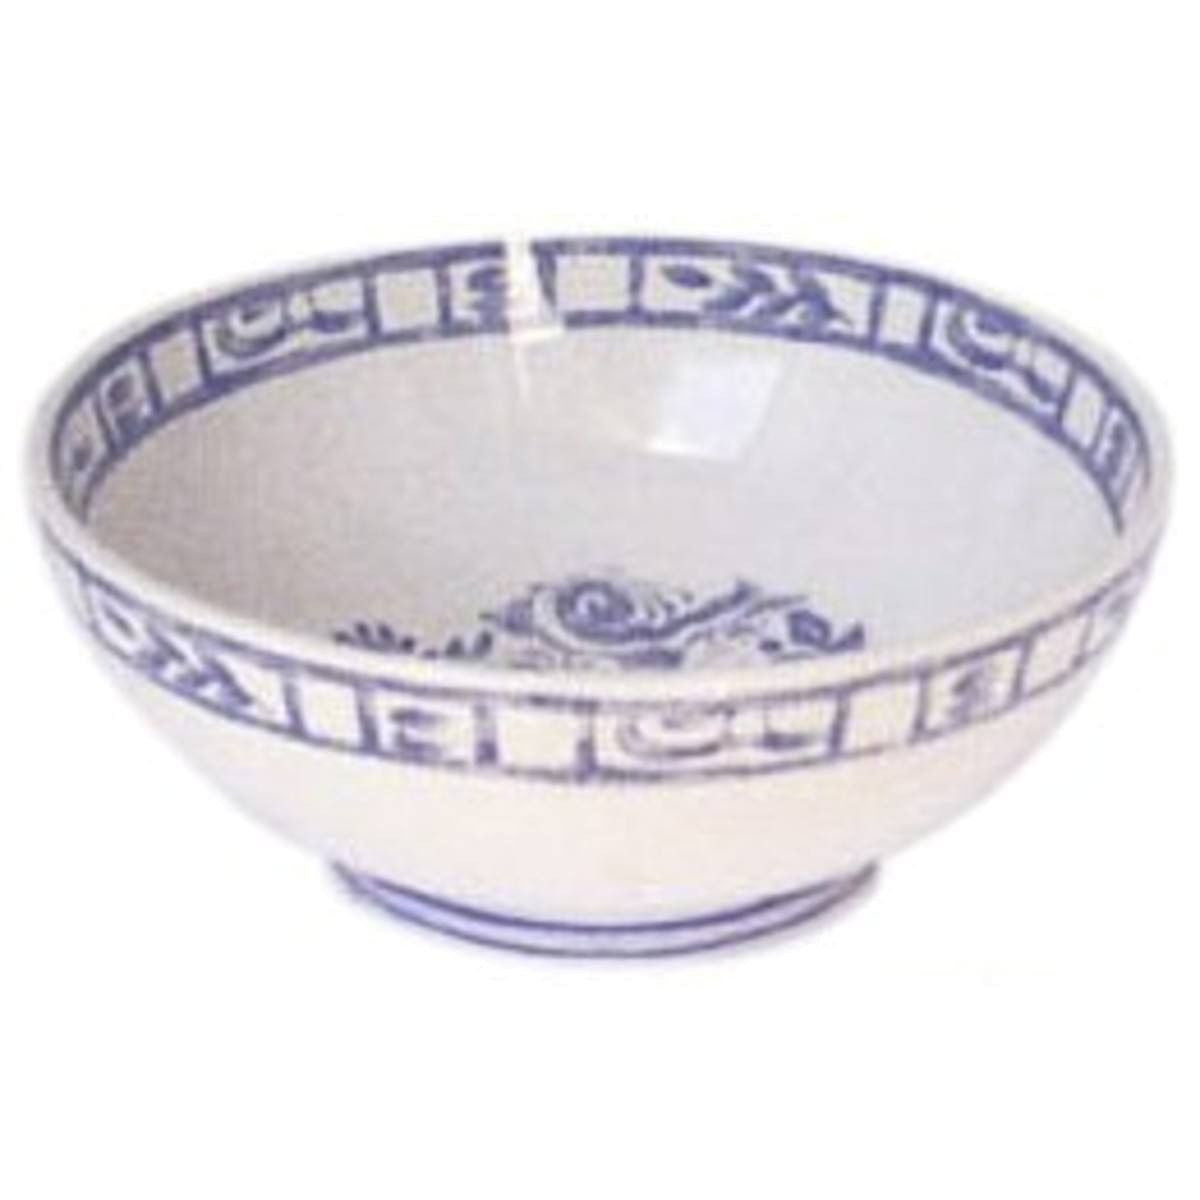 Oiseau Blue Cereal Bowl